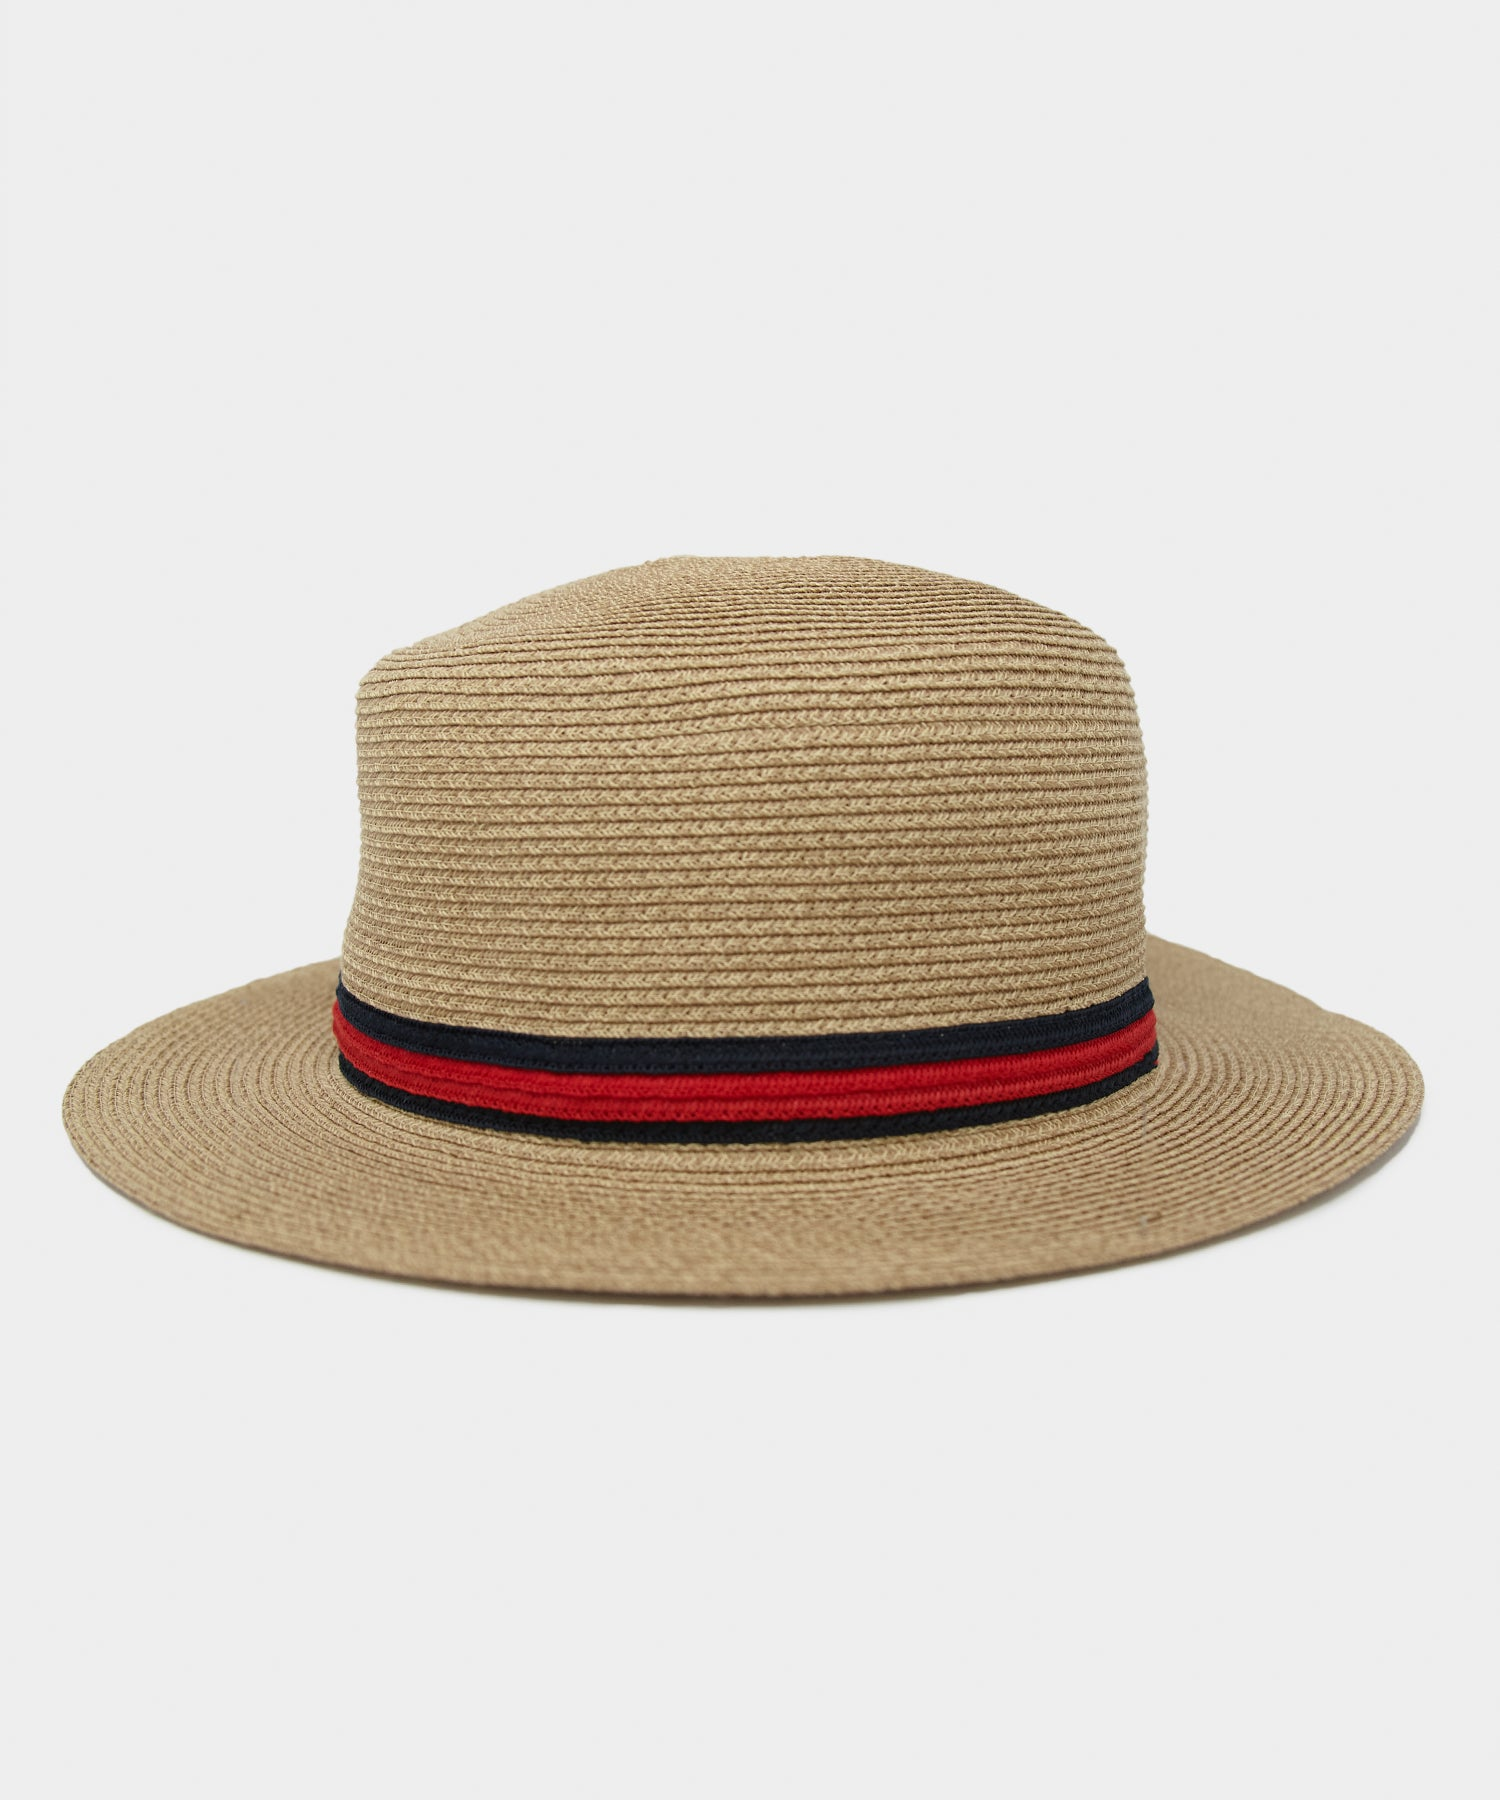 Câbleami Cotton Braid Bucket Hat in Beige